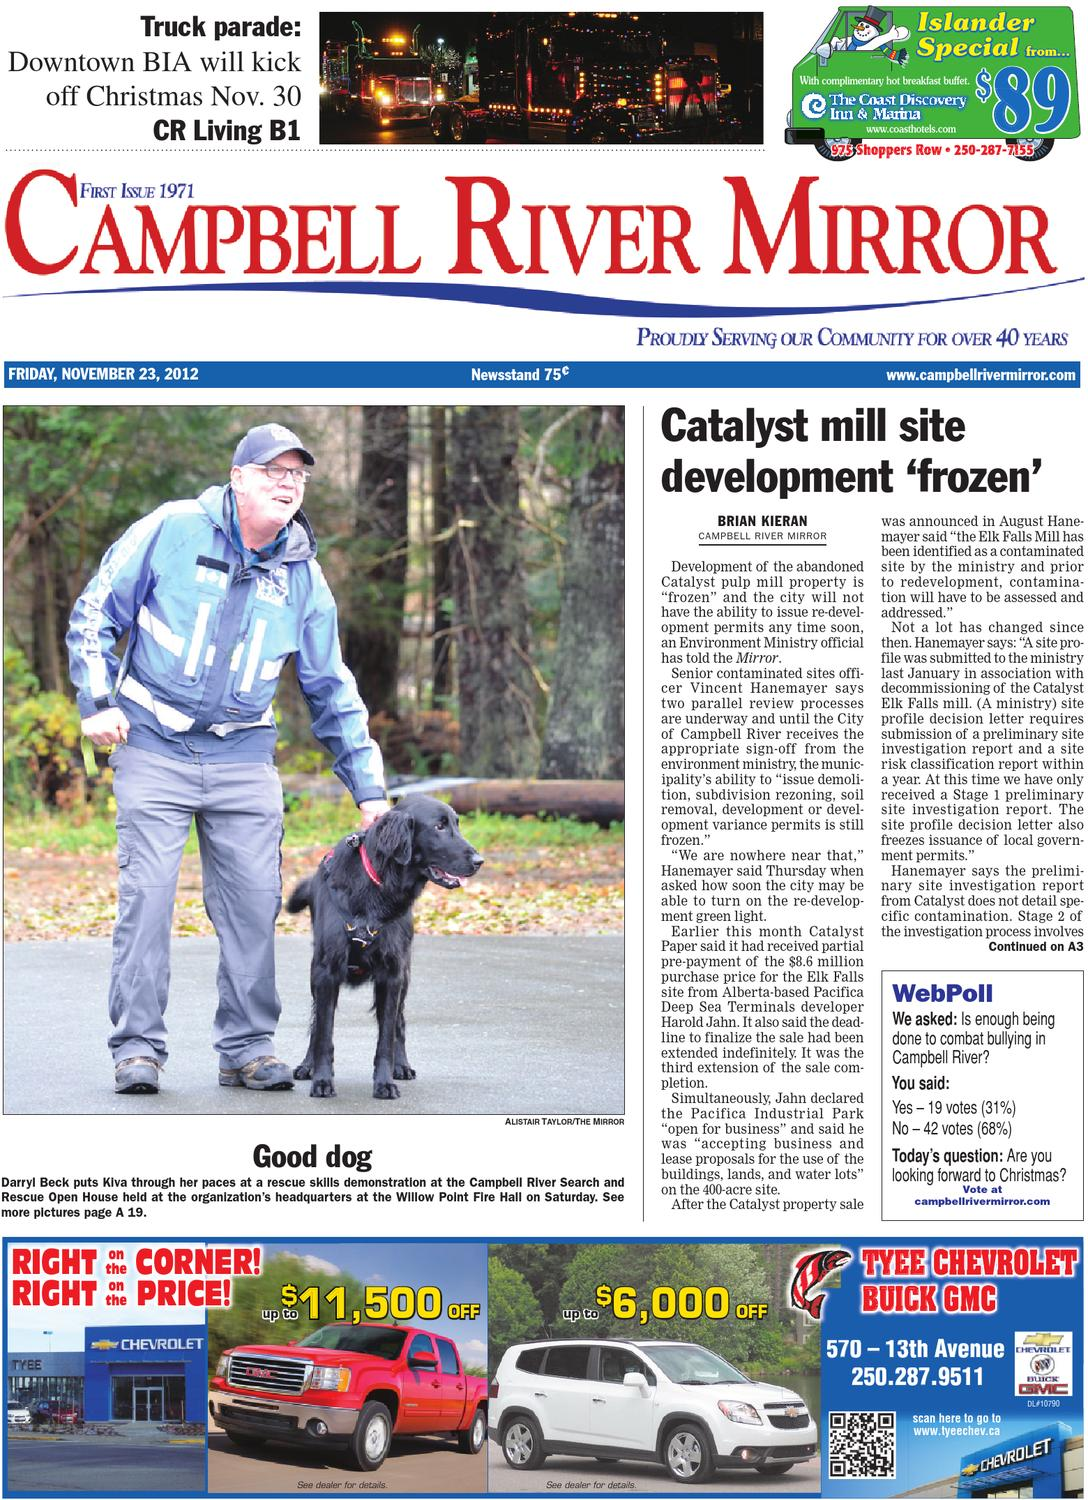 Campbell River Mirror, November 23, 2012 by Black Press - issuu